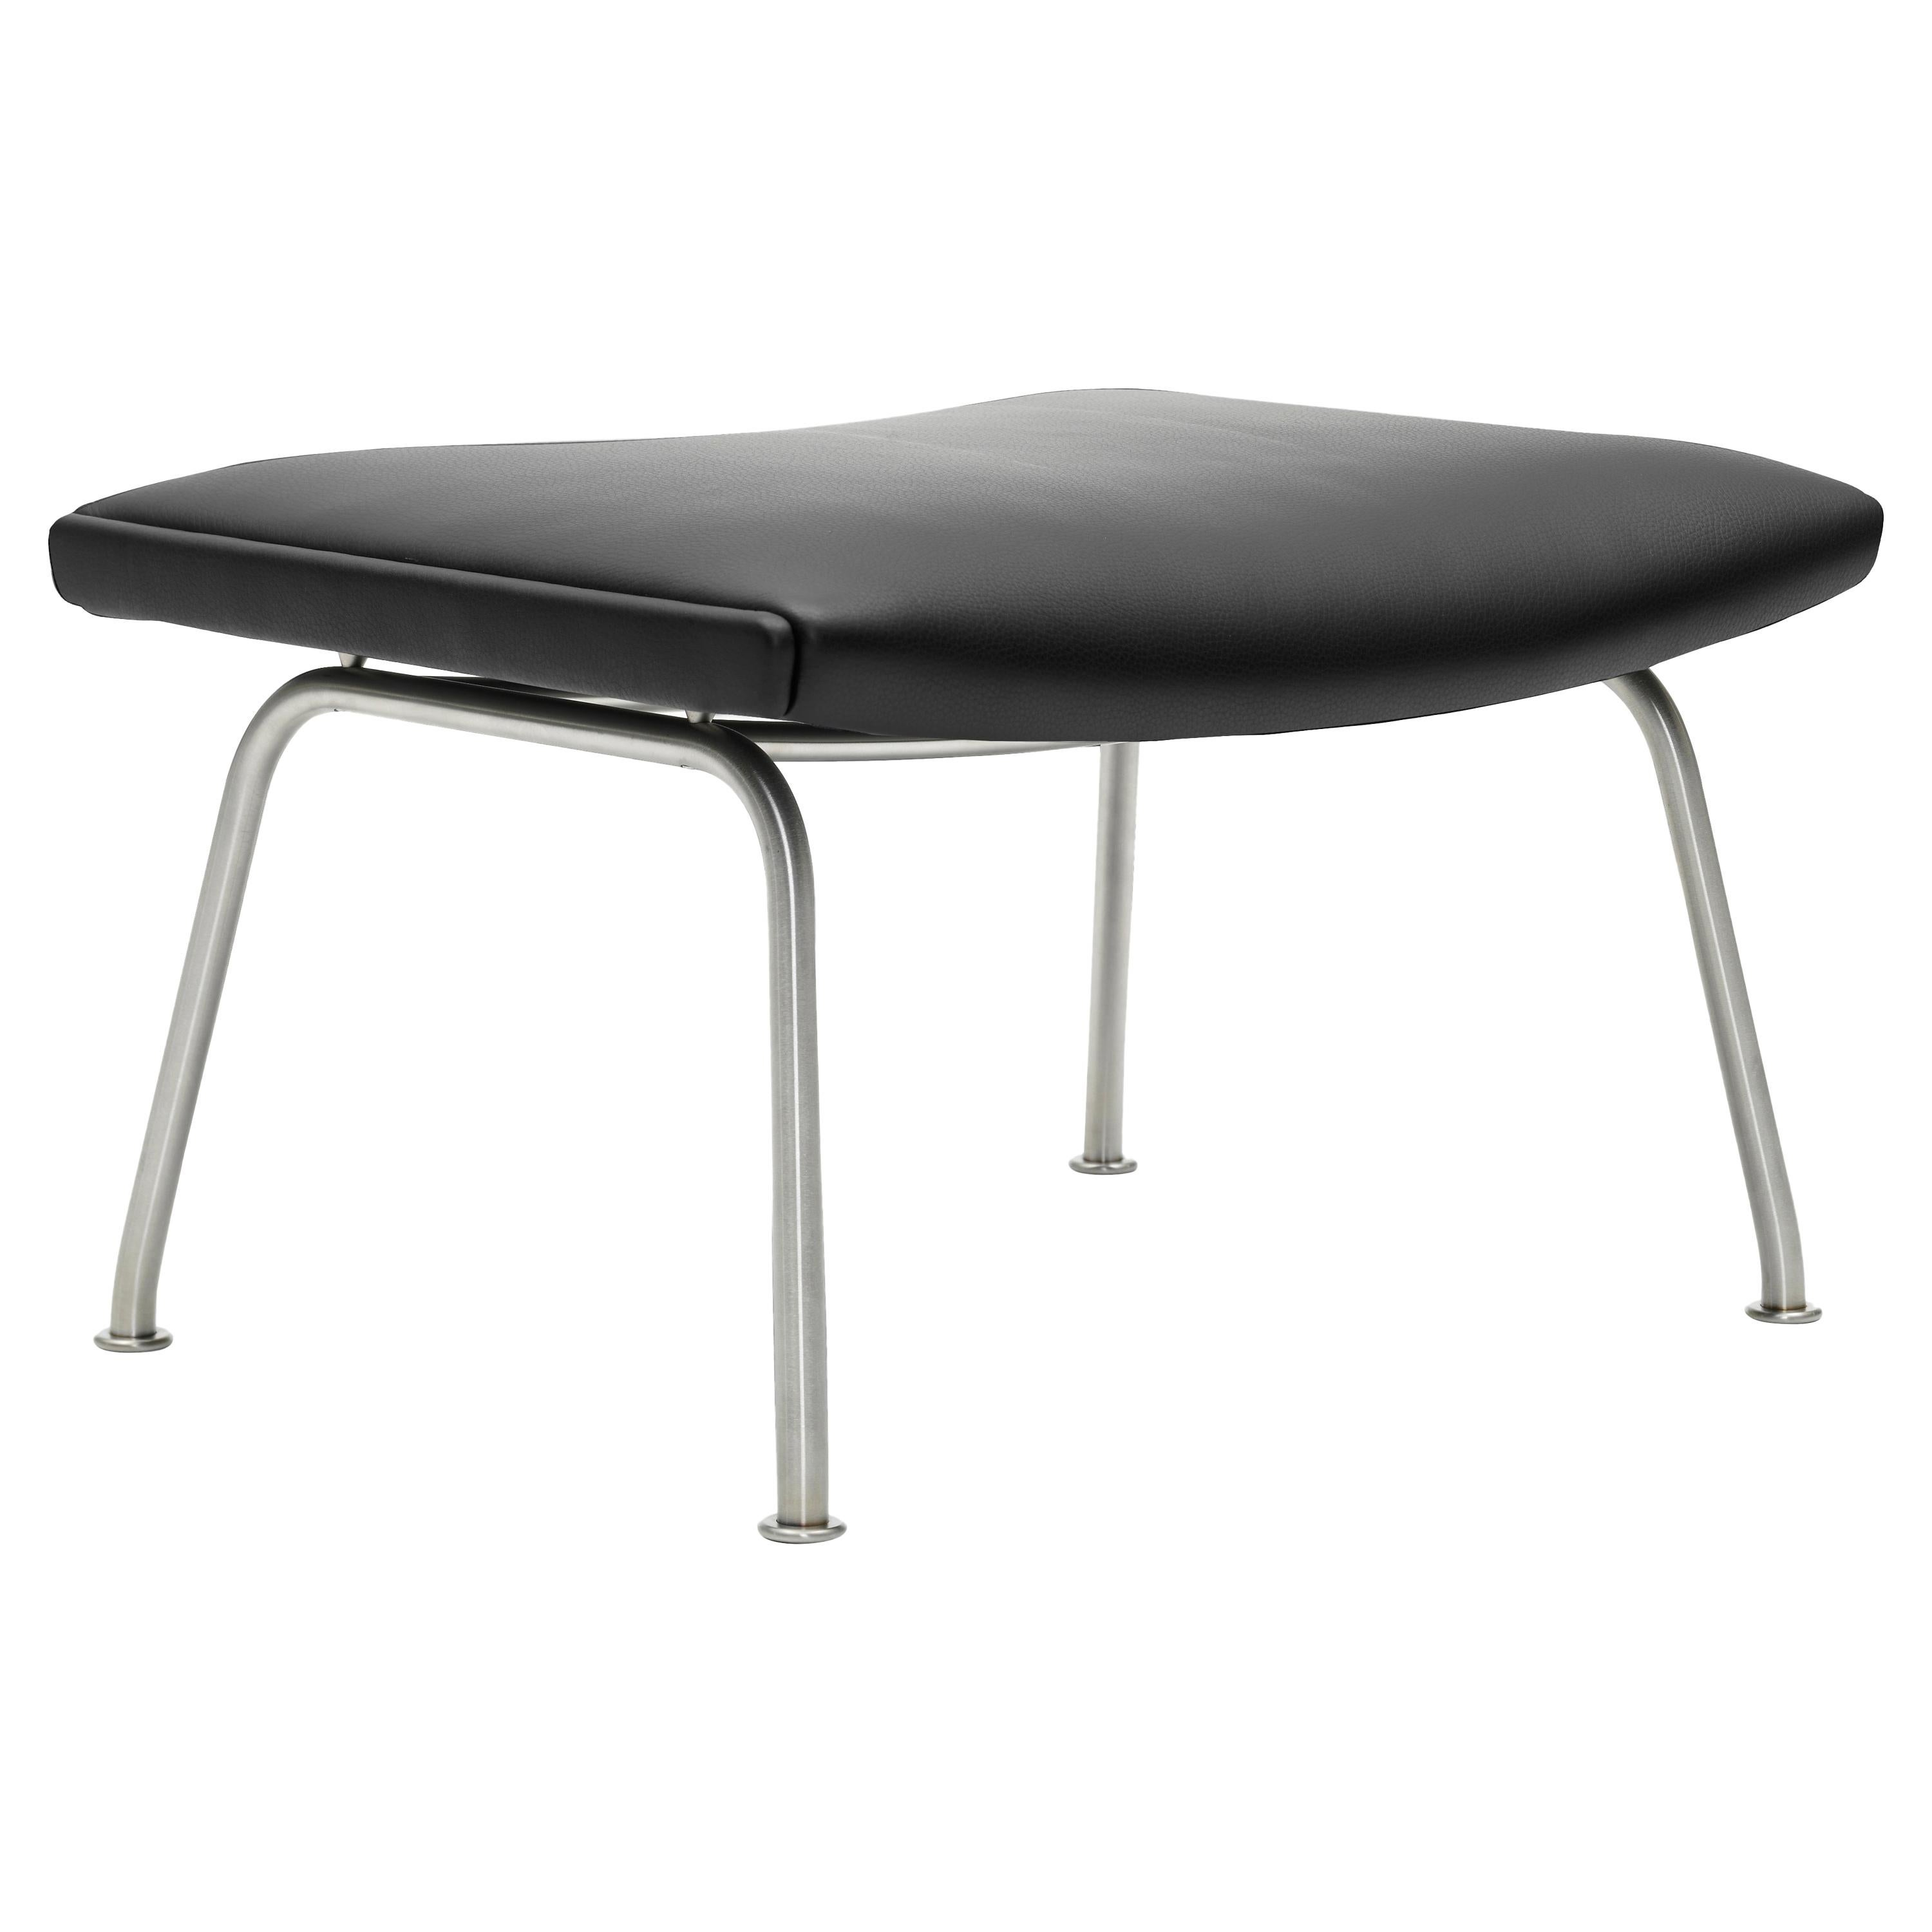 CH446 Footrest in Stainless Steel with Leather Seat by Hans J. Wegner